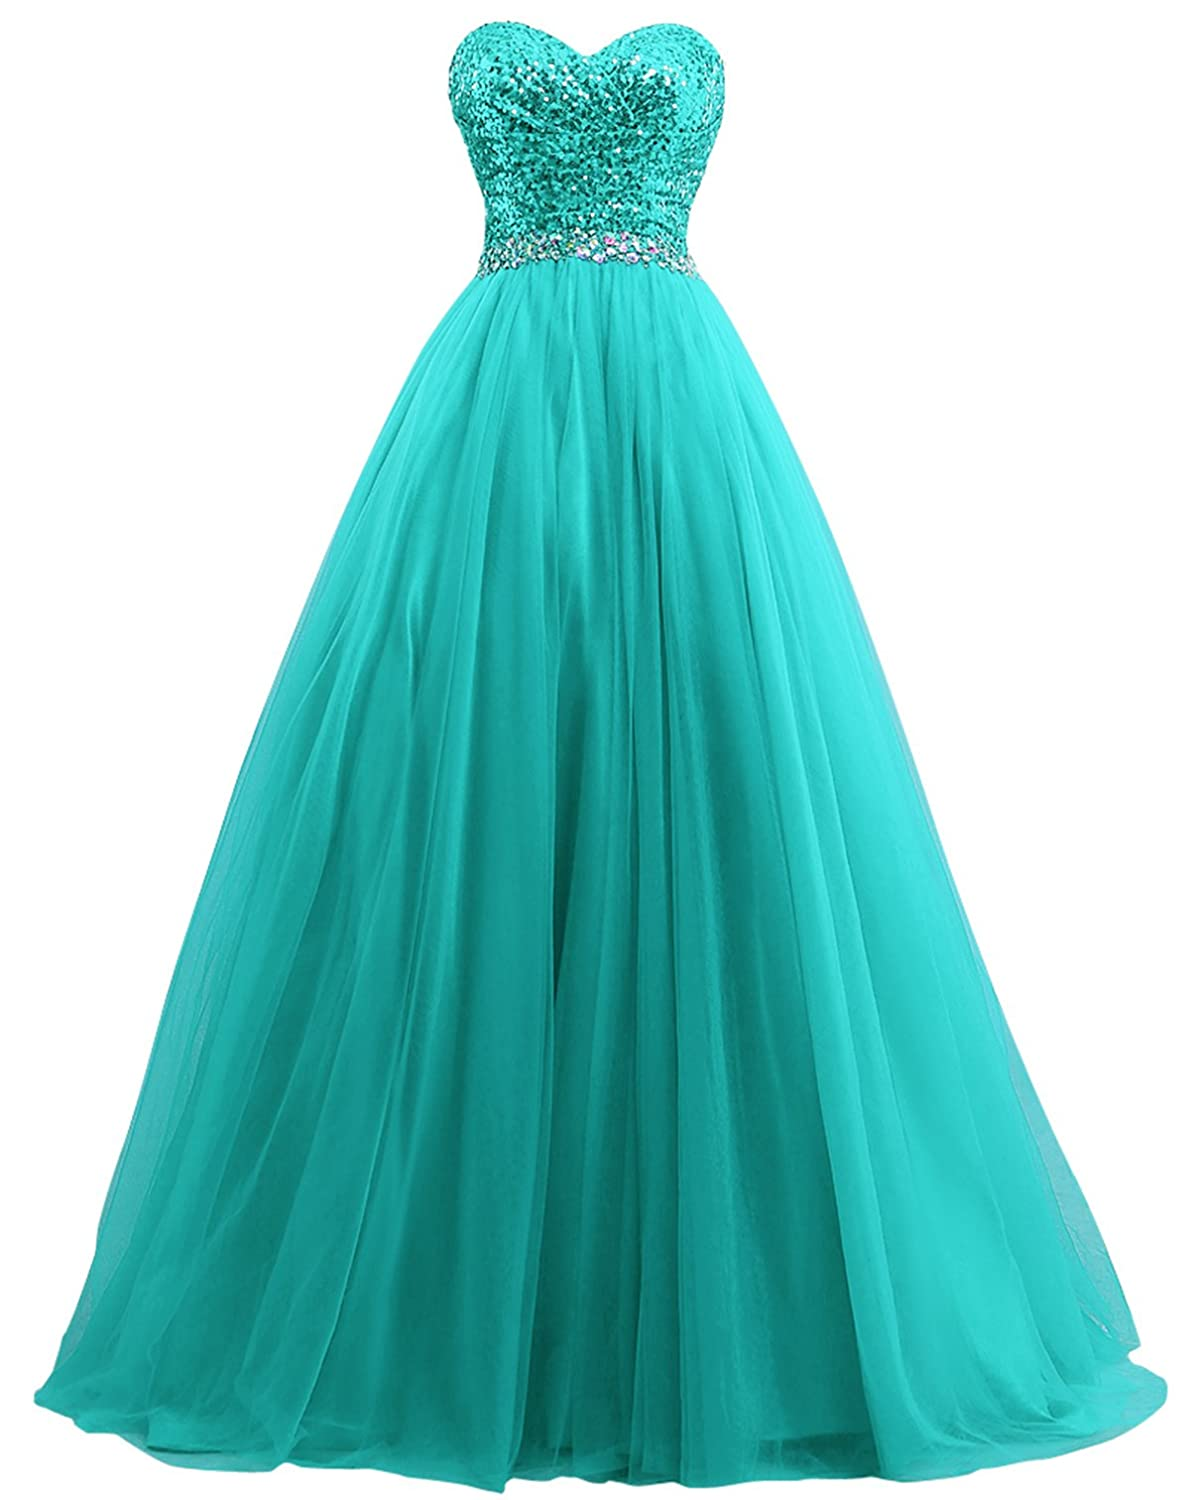 bluee Fanciest Women's Sweet 16 Tulle Sequin Ball Gown Prom Dresses for Quinceanera